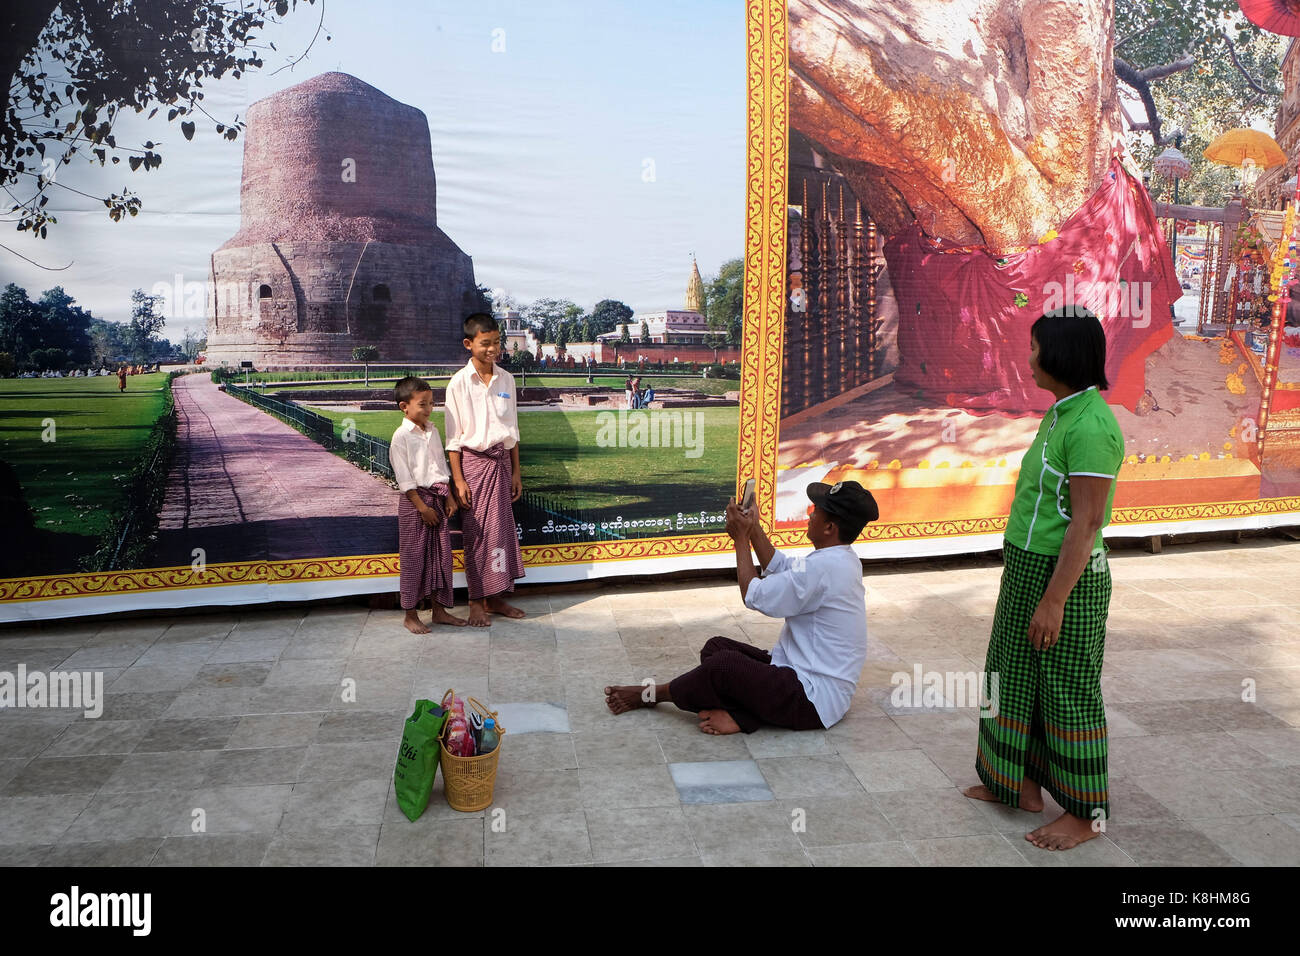 Burma, Myanmar: Burmese tourists taking pictures of each other in front of giant posters in Rangoon. Stock Photo